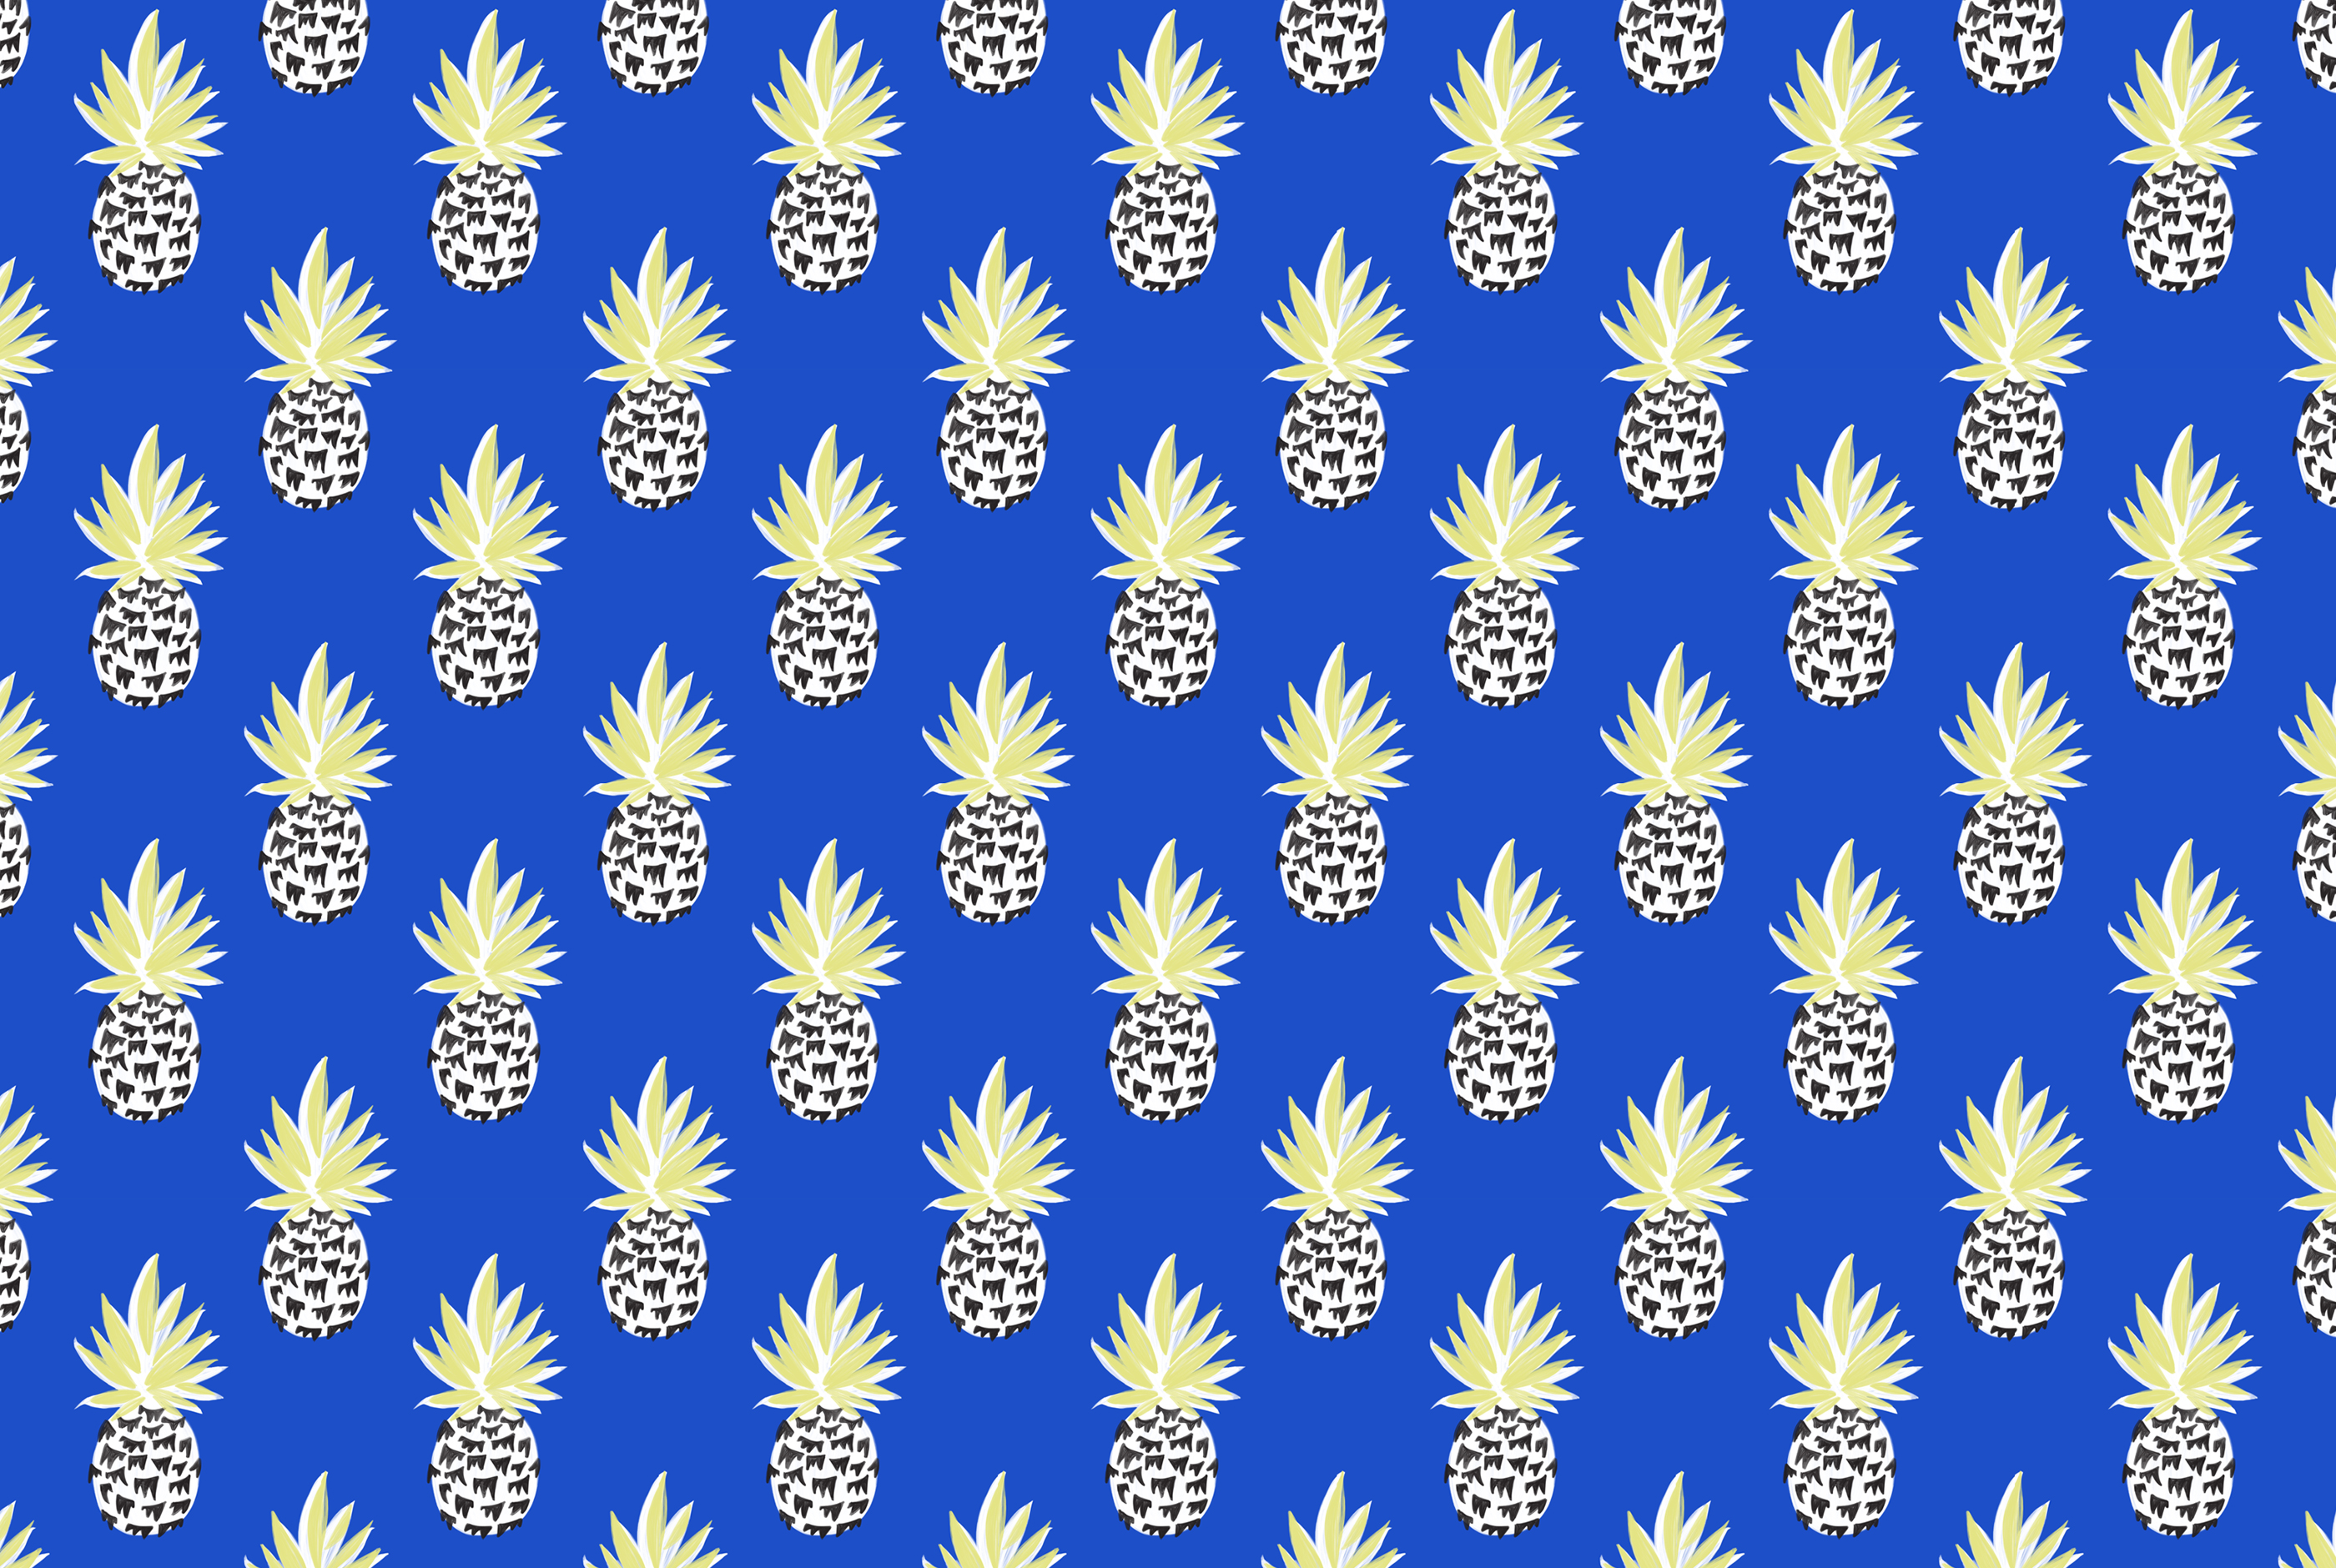 Most Inspiring Wallpaper Macbook Pineapple - 808ede86c4495a17b8fdd556fc3e329f7be195e2_june-desktop-wallpaper-pineapples-cobalt  You Should Have_419387.jpg